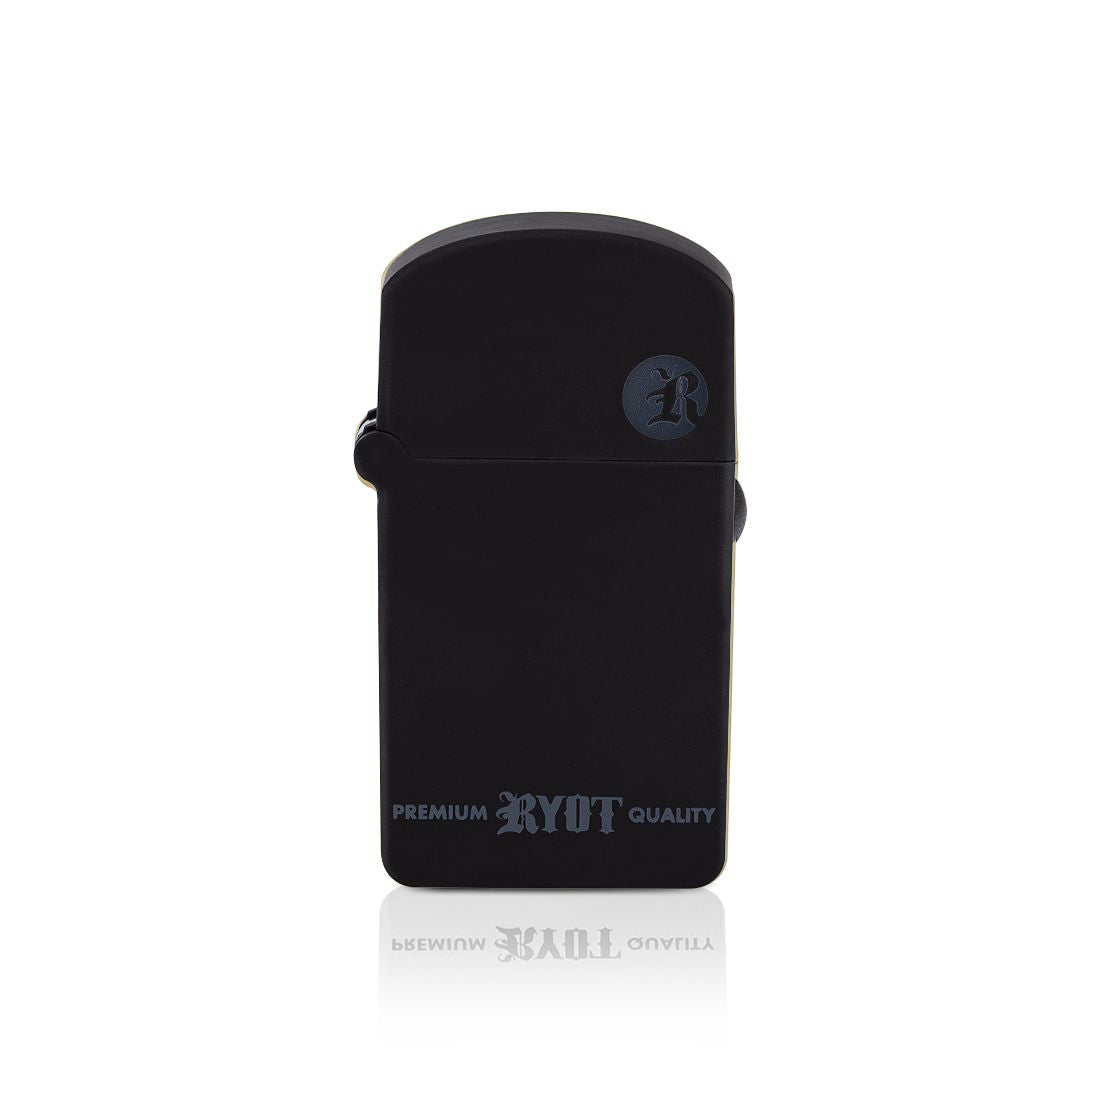 RYOT - VERB 510 Battery (Black)